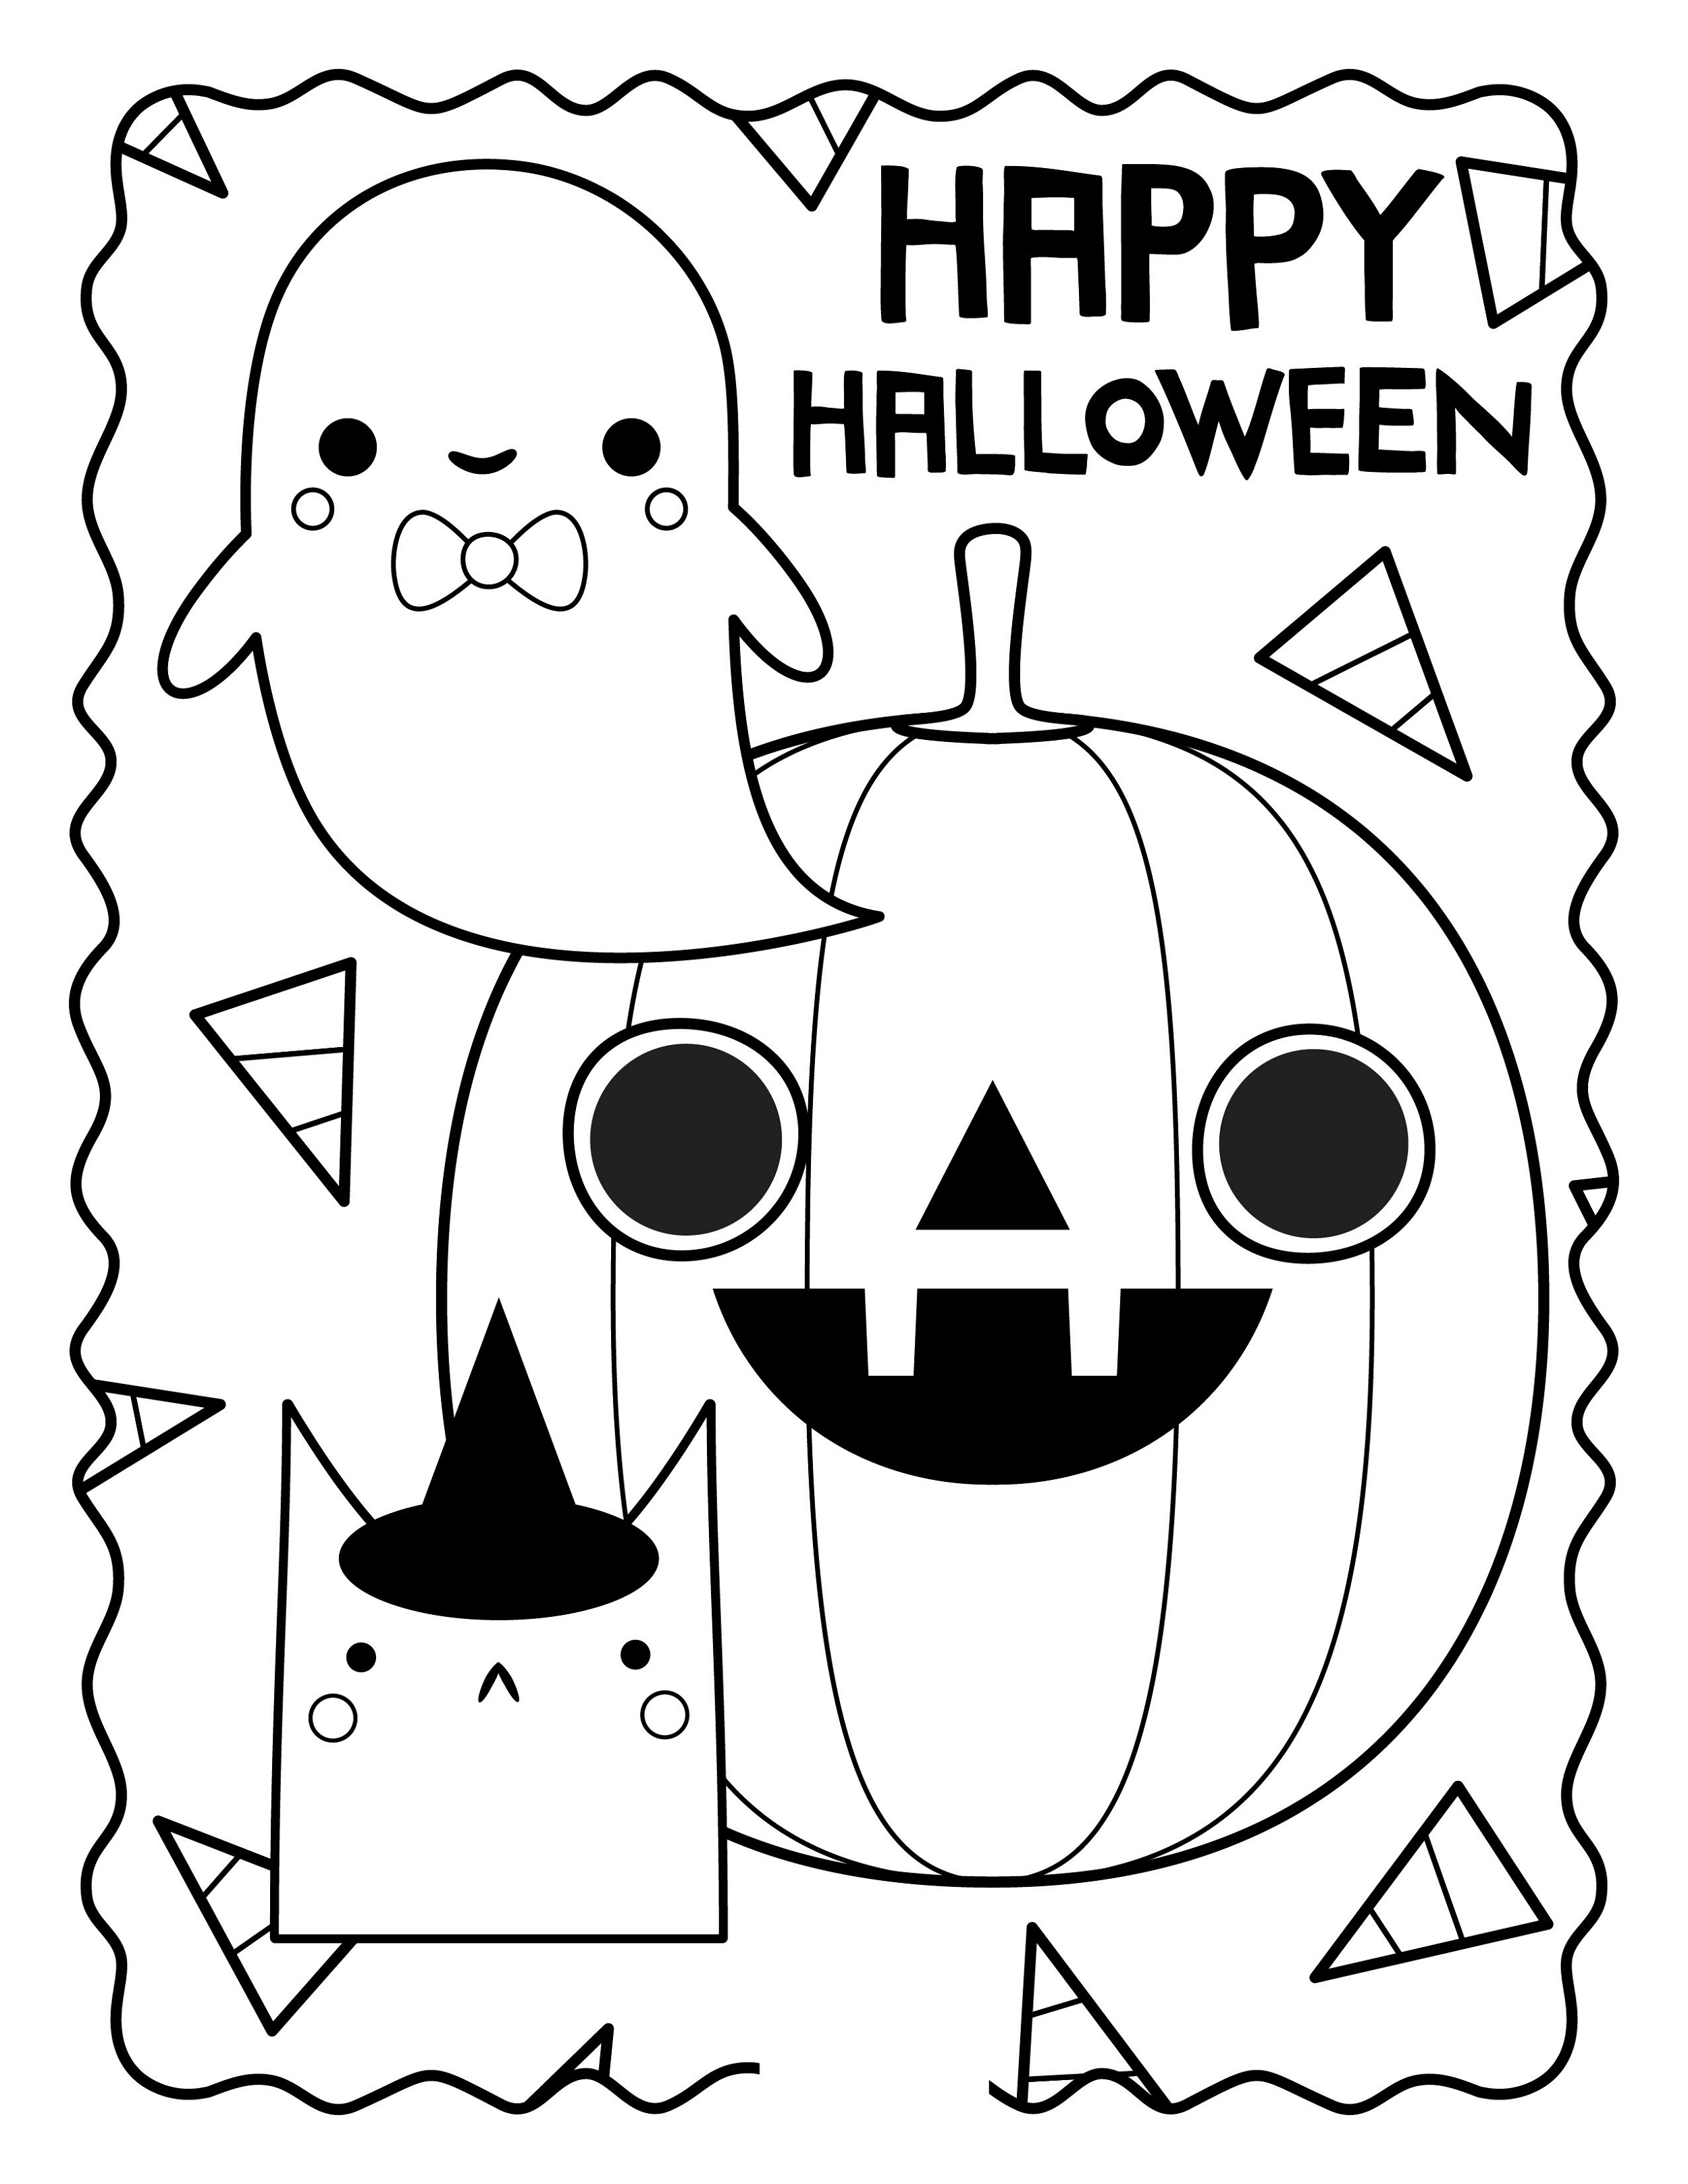 cute halloween coloring pages cute halloween coloring pages coloring pages to download cute coloring halloween pages